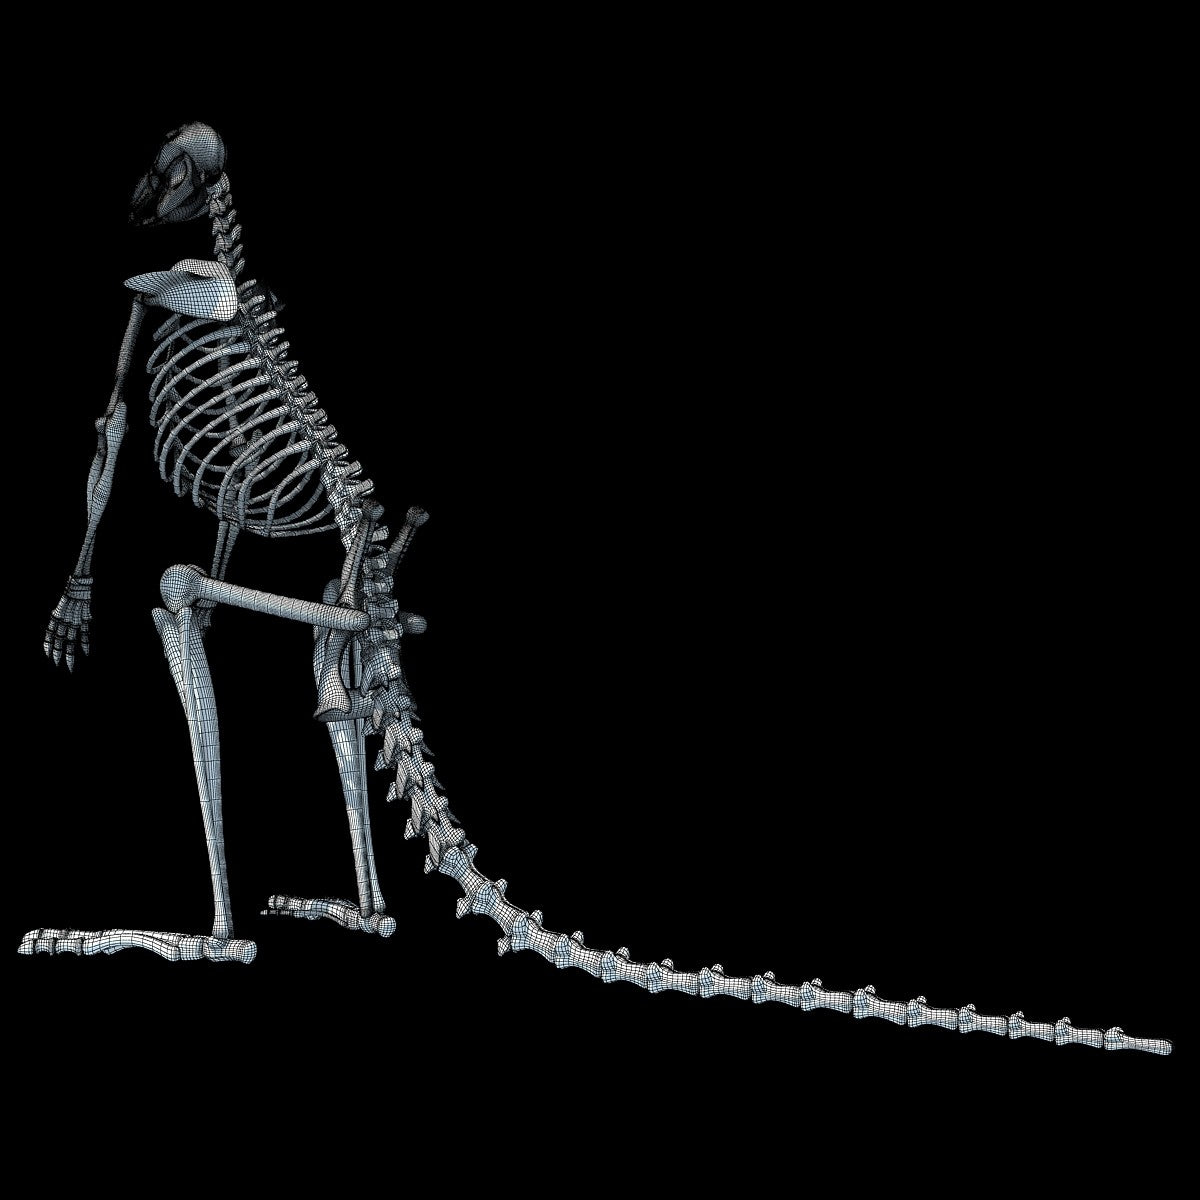 Kangaroo Skeleton